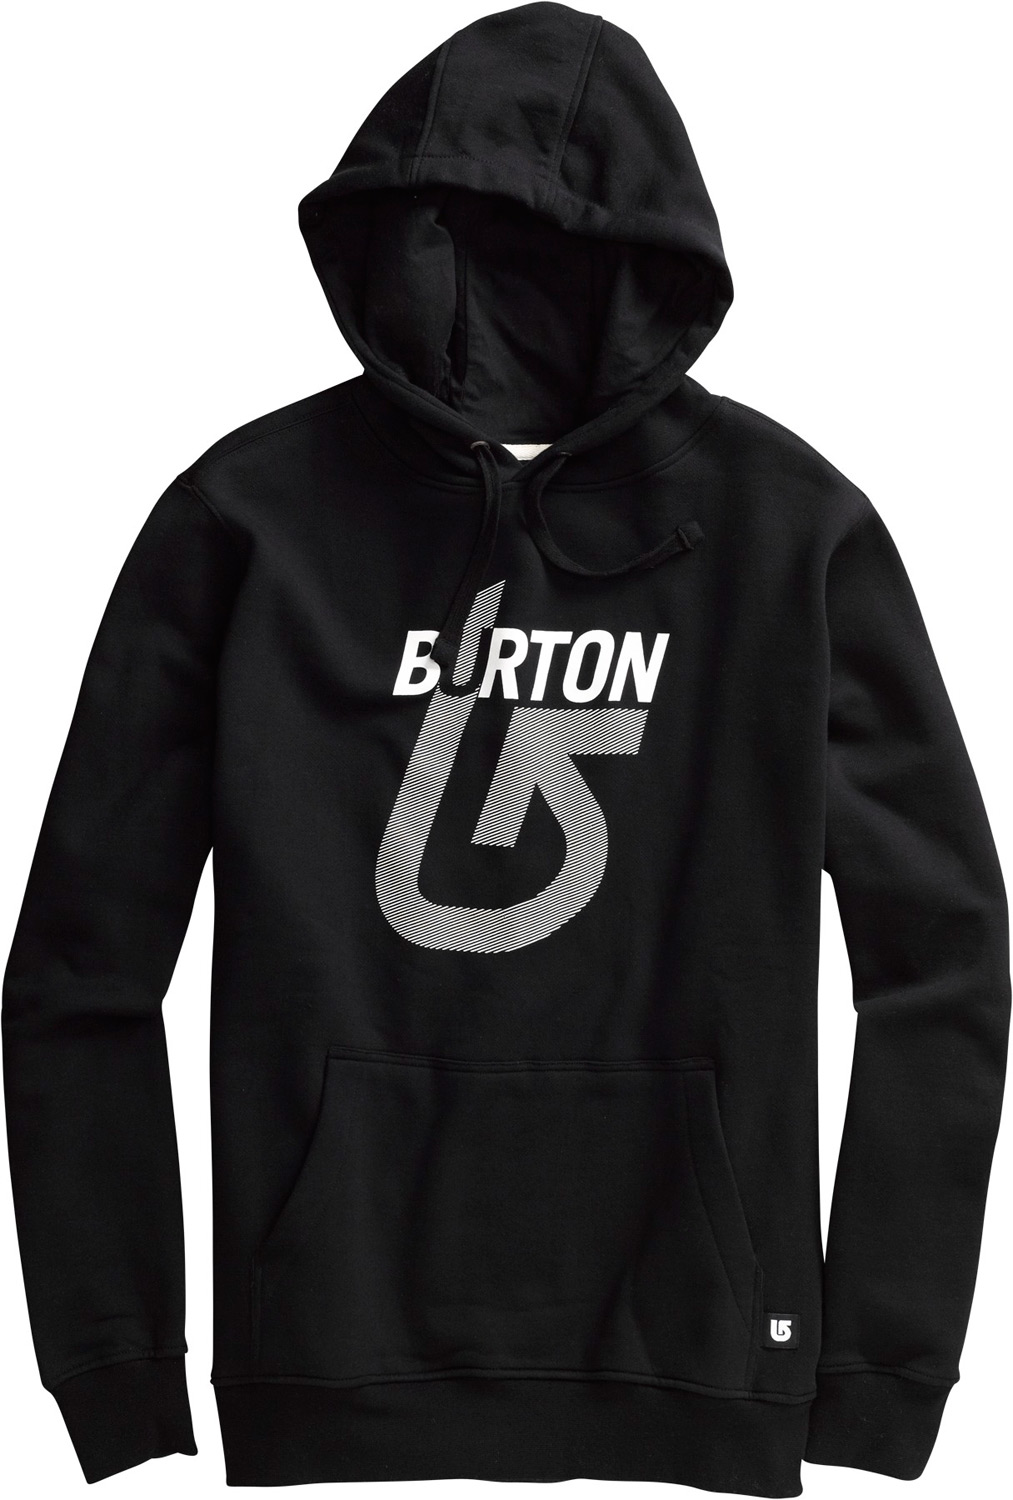 Snowboard Key Features of the Burton Karpis Pullover Hoodie: 80% Cotton, 20% polyester, 300G Fleece Karpin Process Logo print on chest Sig fit - $38.95